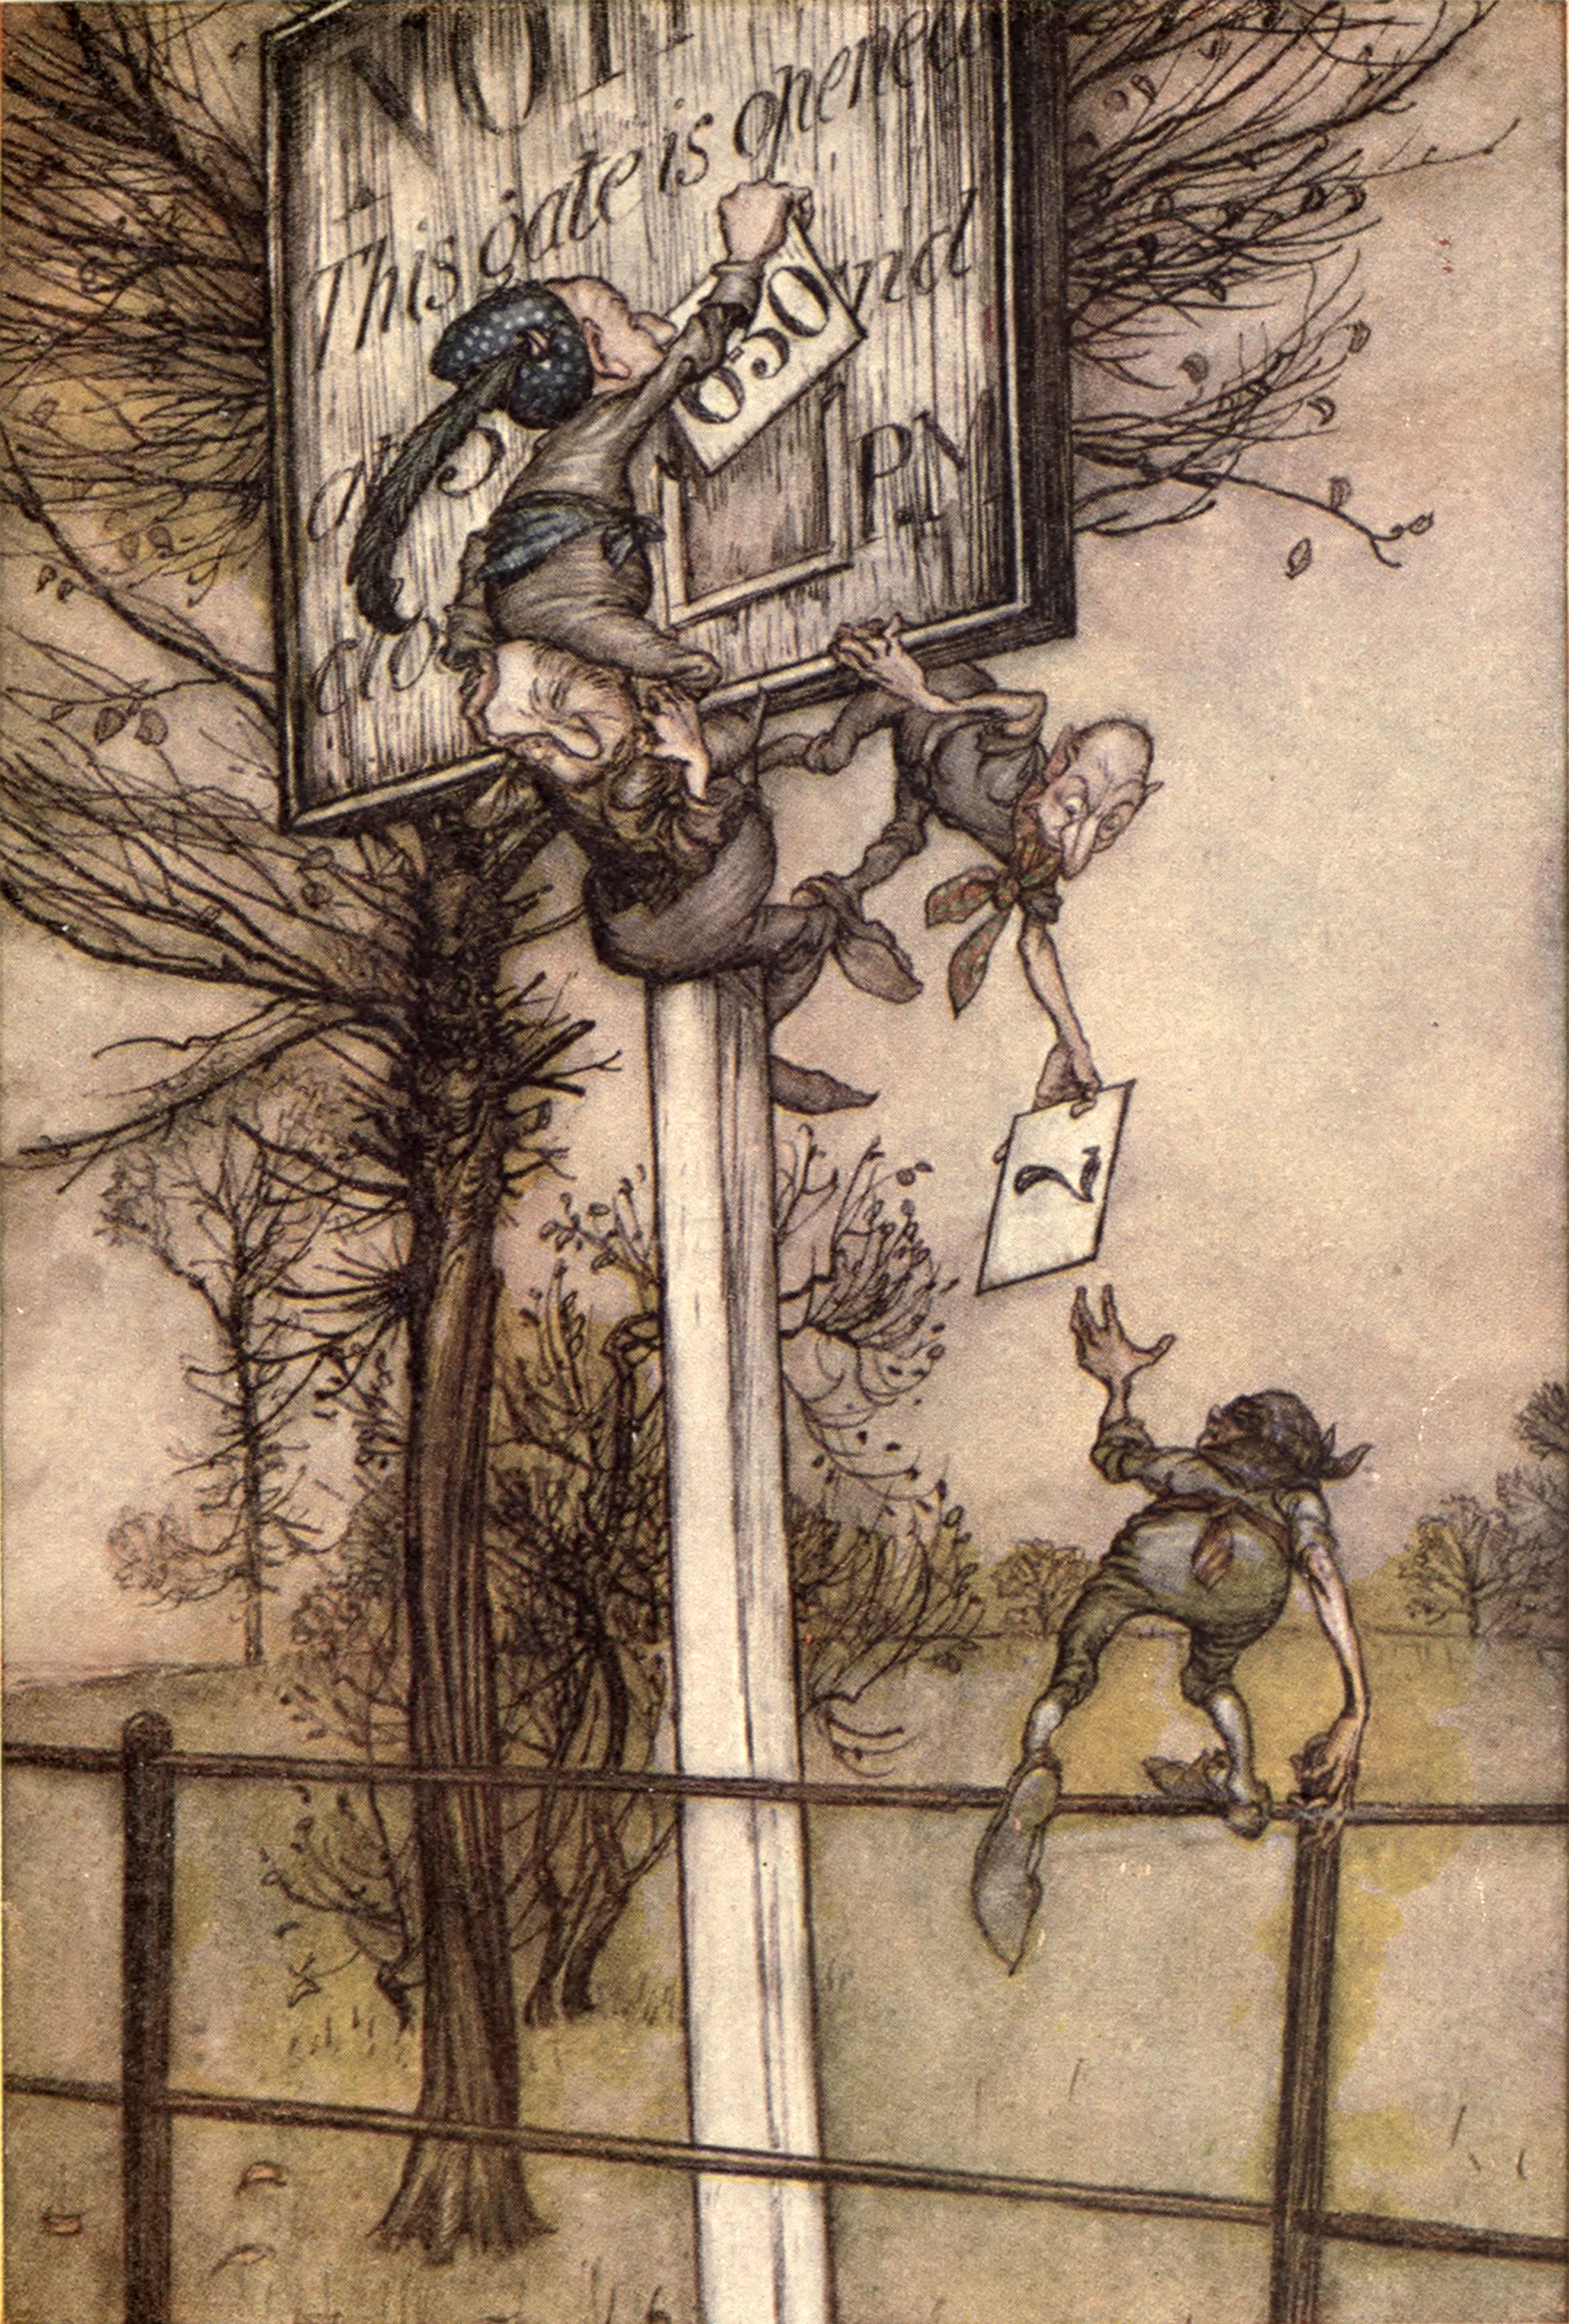 From Peter Pan in Kensington Gardens by Arthur Rackham